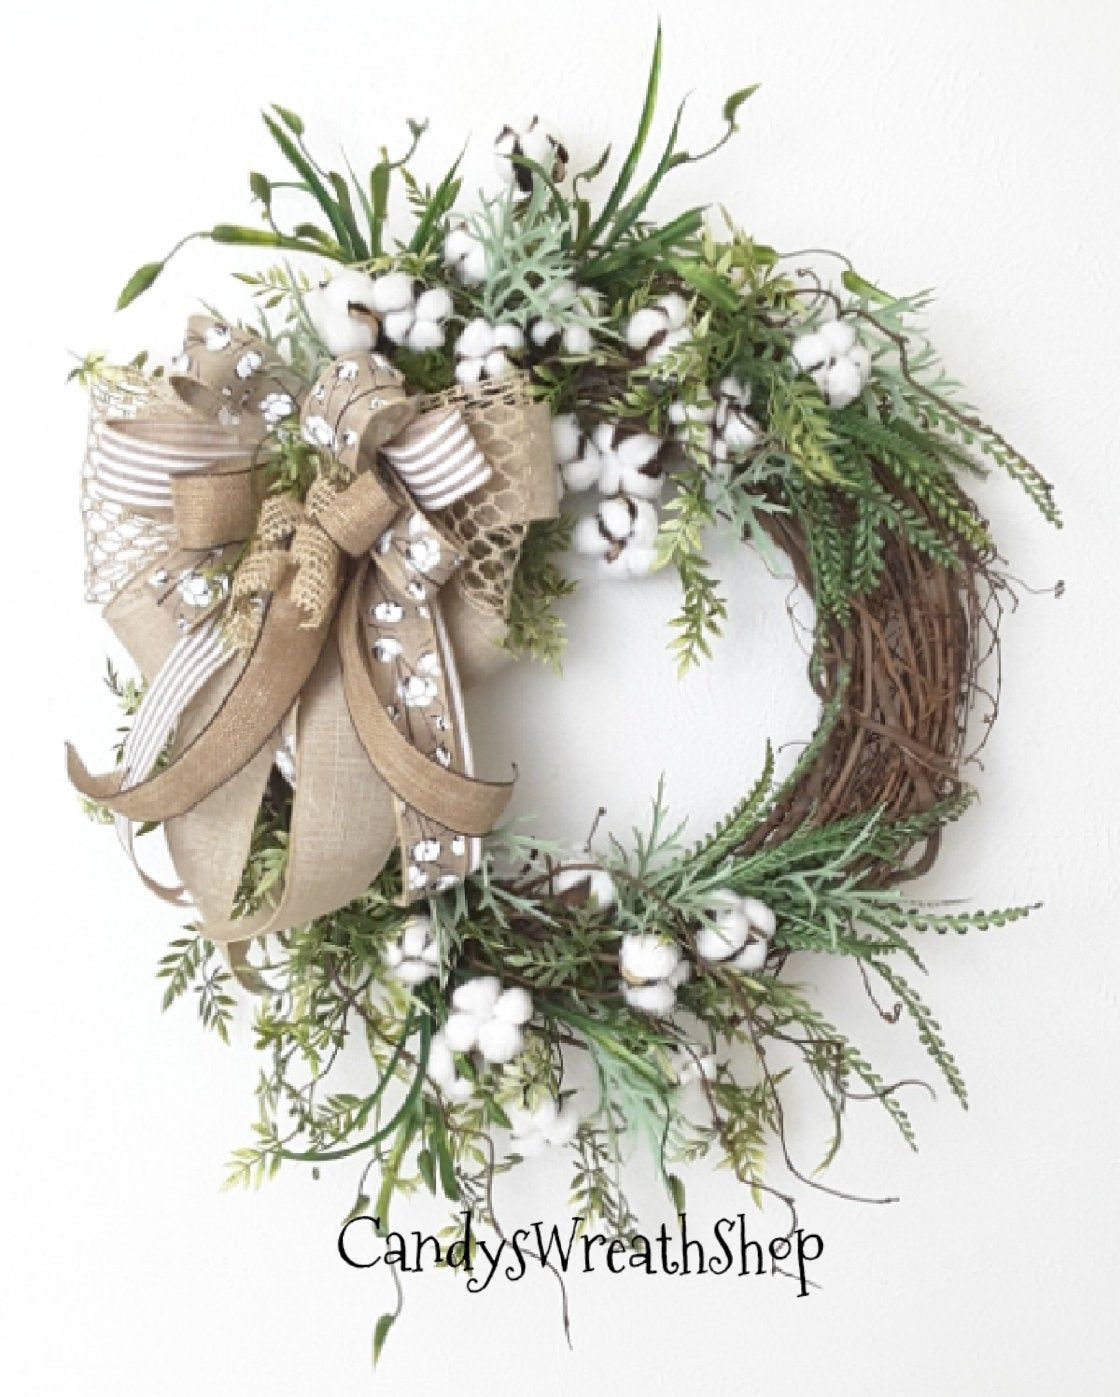 Photo of Summer Wreath, Cotton Boll Wreath, Southern Wreath, Floral Wreath, Farmhouse Wreath, Grapevine Wreath, Cotton Wreath, Summer Floral Wreath